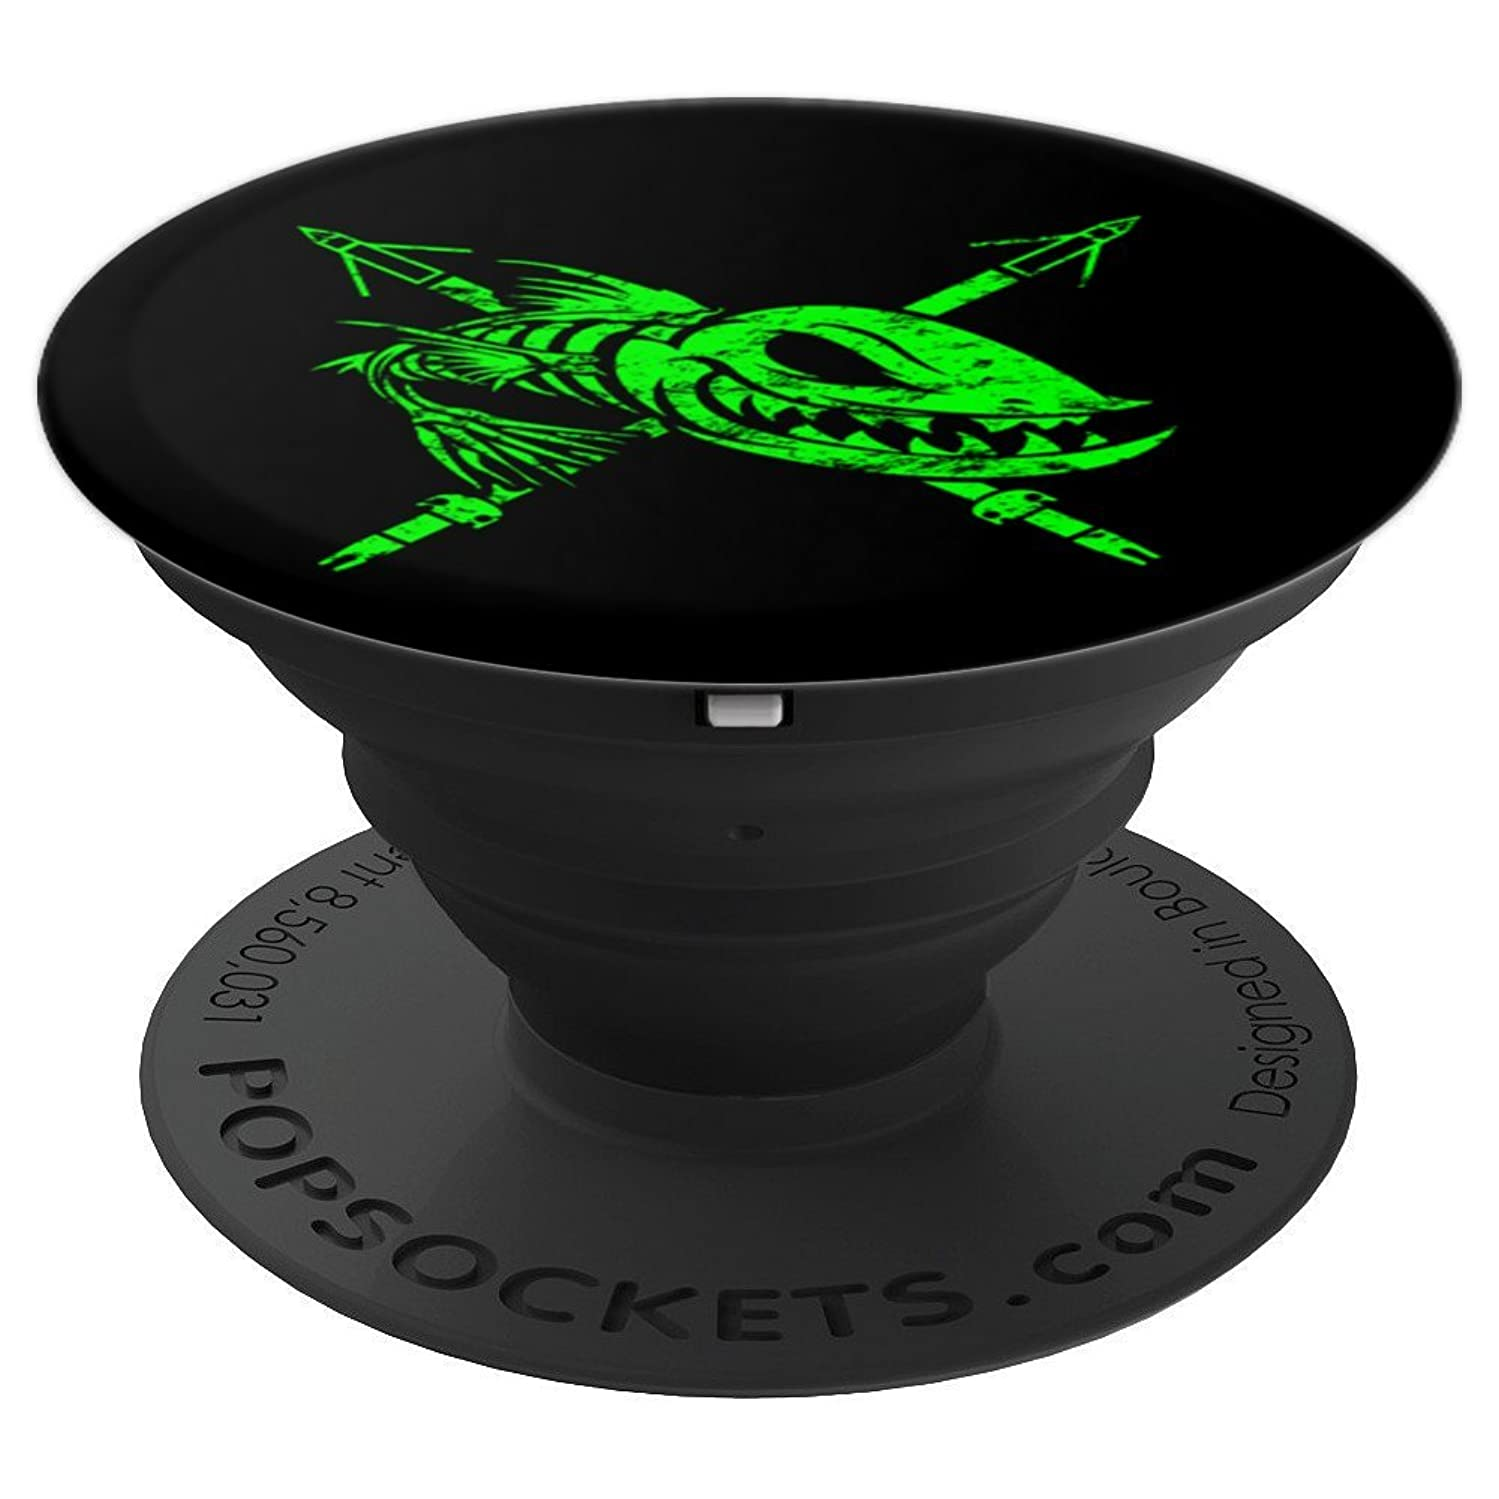 Bow Fishing - Bow Fisherman Shirts and Gifts - PopSockets Grip and Stand for Phones and Tablets